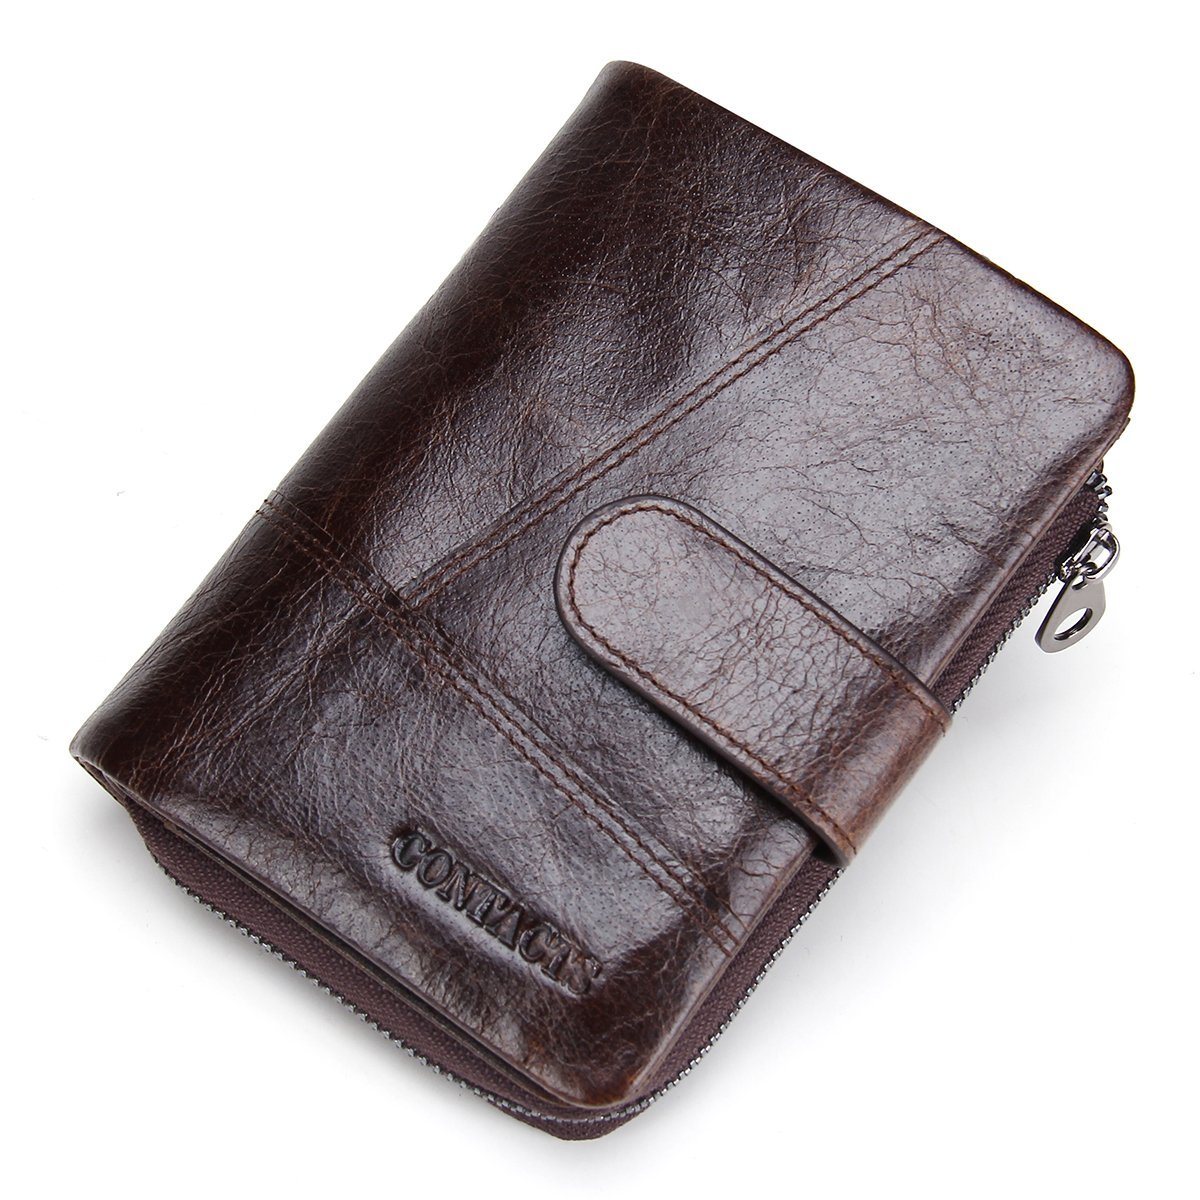 Contacts Mens Real Leather Cowhide Bifold Card Holder Zipper Coin Pocket Short Wallet Dark Brown